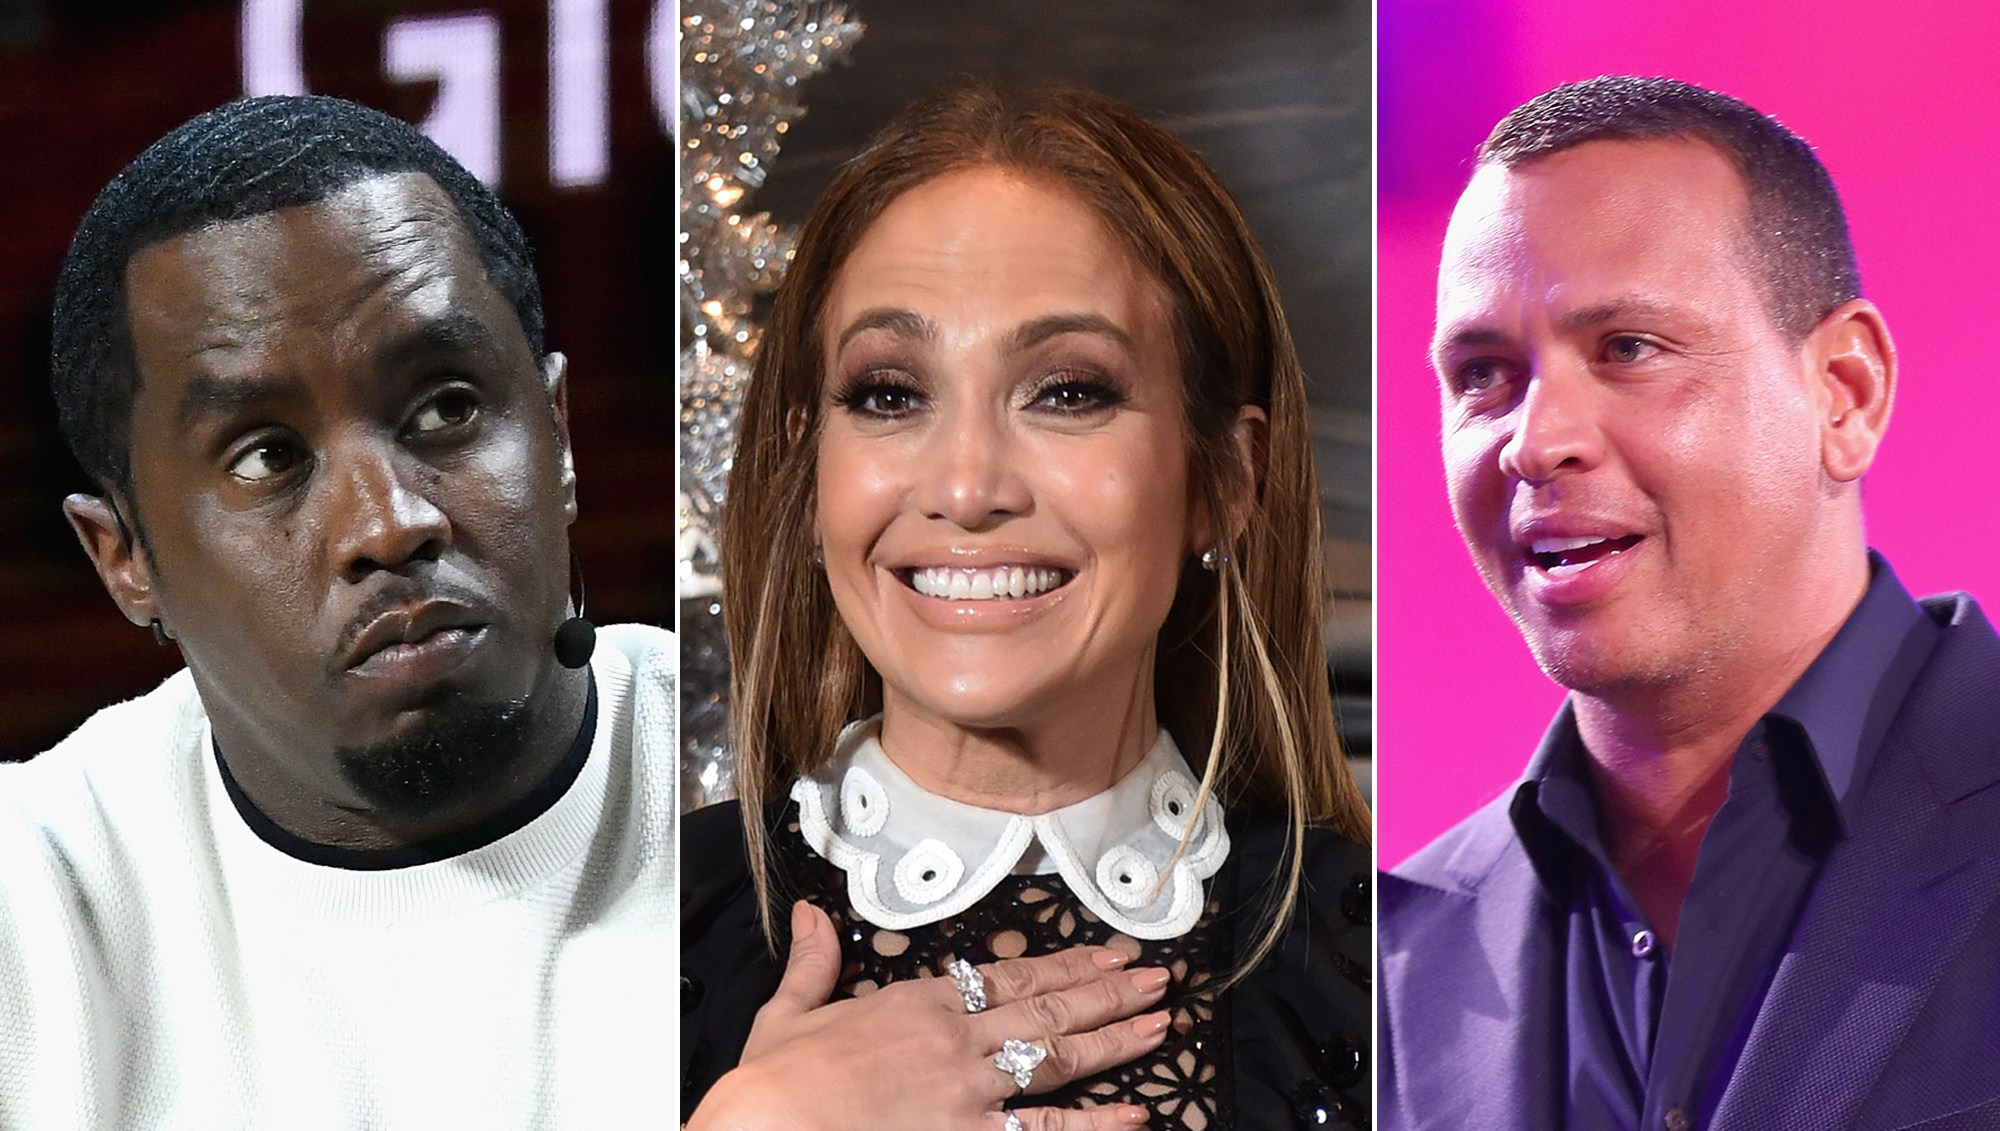 Diddy and A-Rod Comment on J.Lo's Abs Photo During Her 10-Day Sugar Challenge